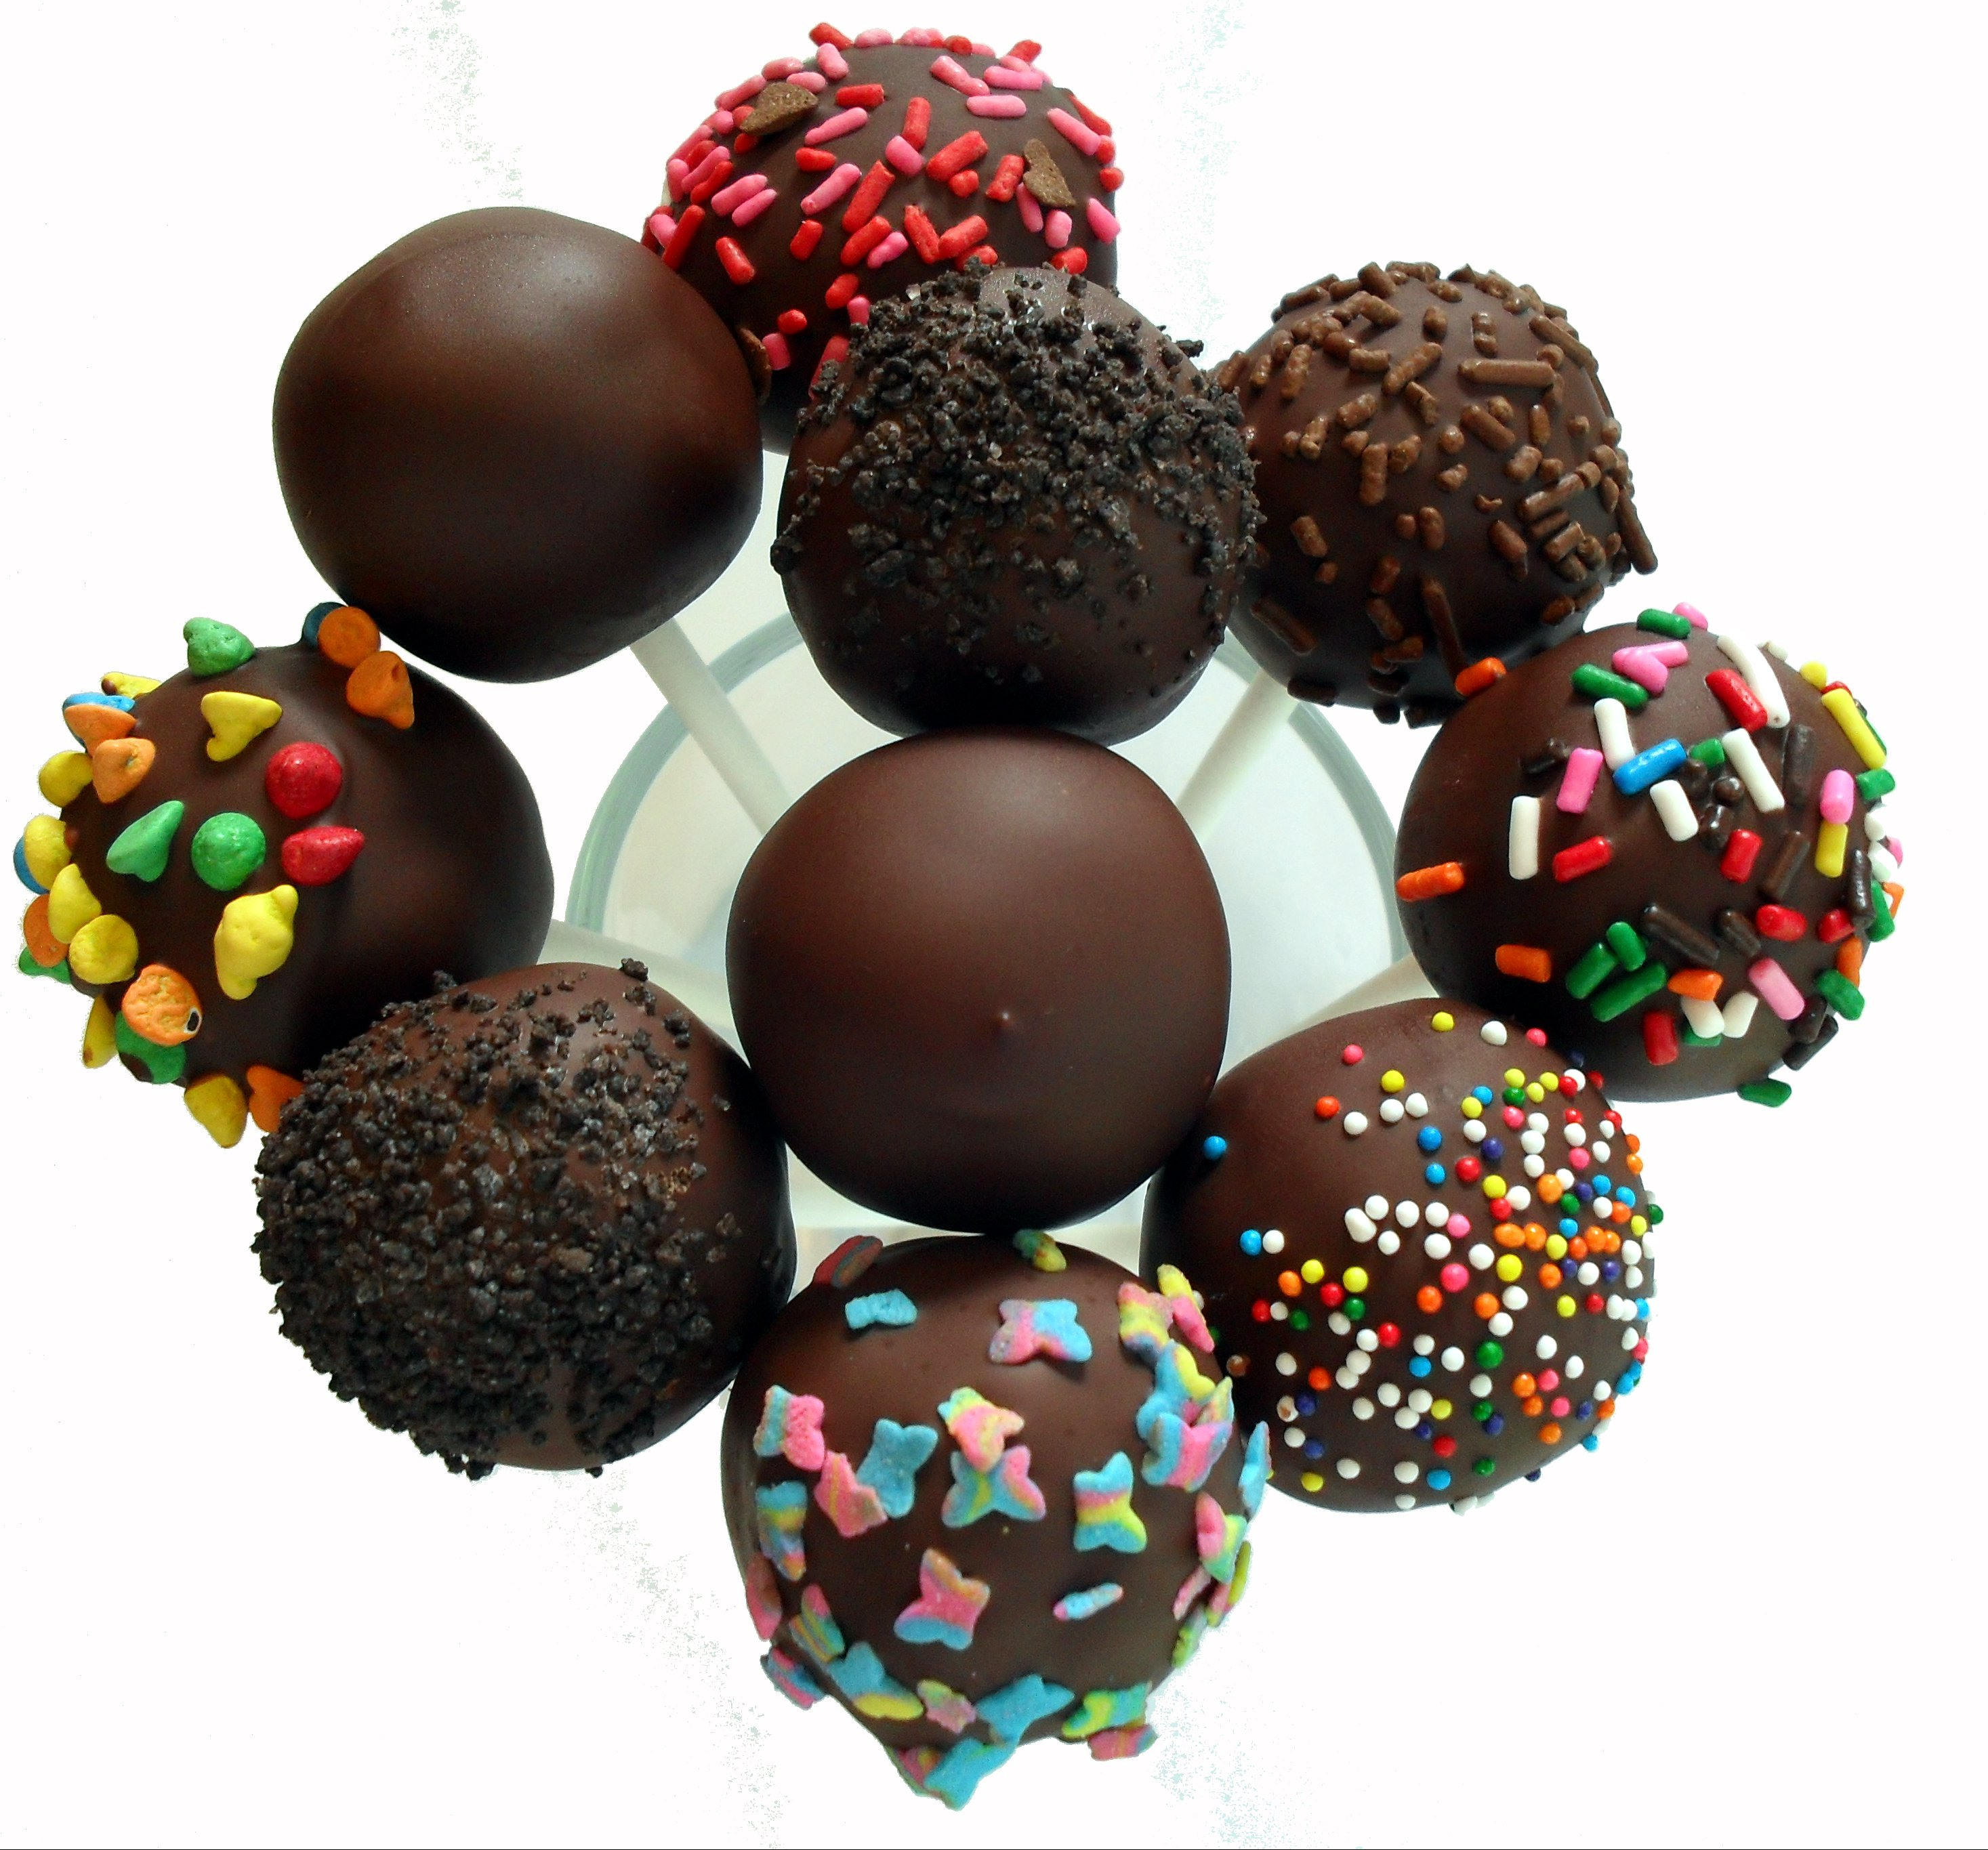 Images Of Chocolate Cake Pops : Vegan Dark Chocolate Cake Pops Veronica s Cornucopia